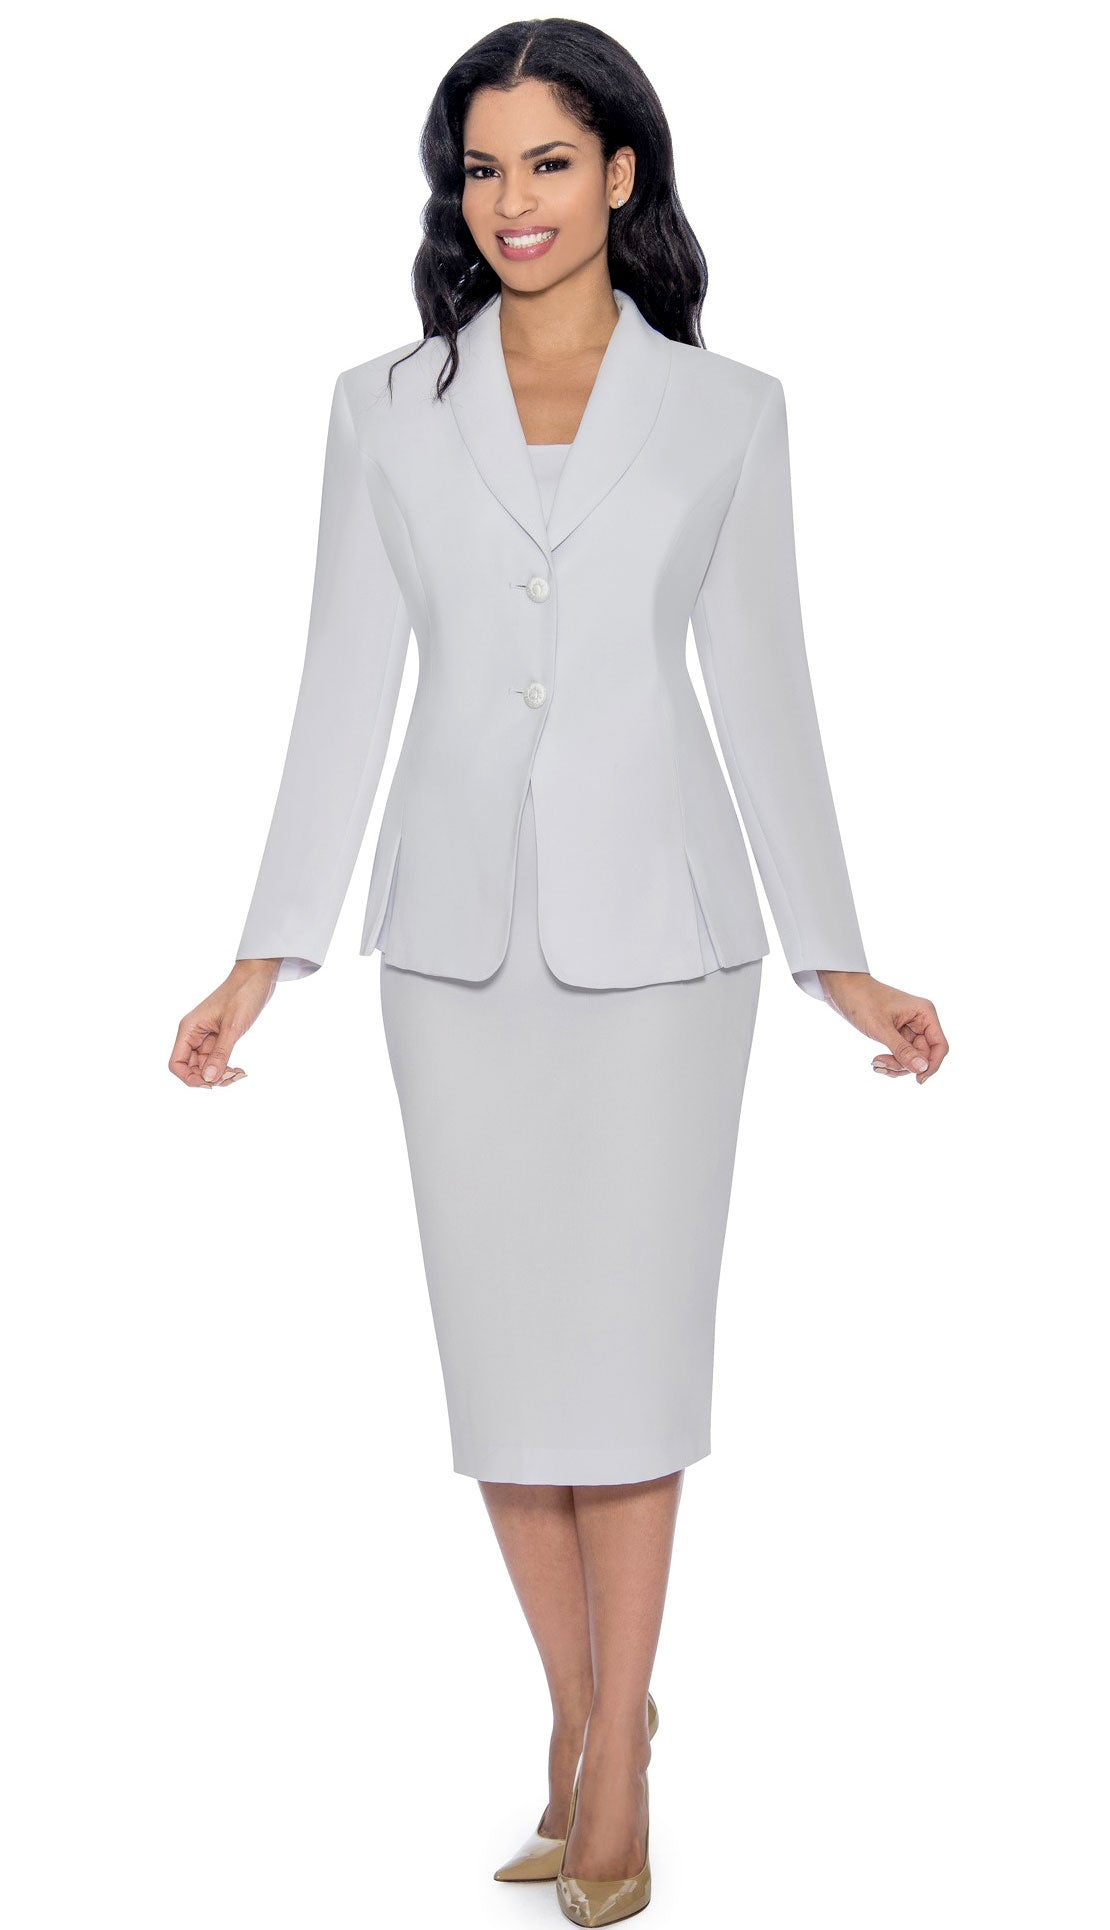 Giovanna Usher Suit 0826-White - Church Suits For Less